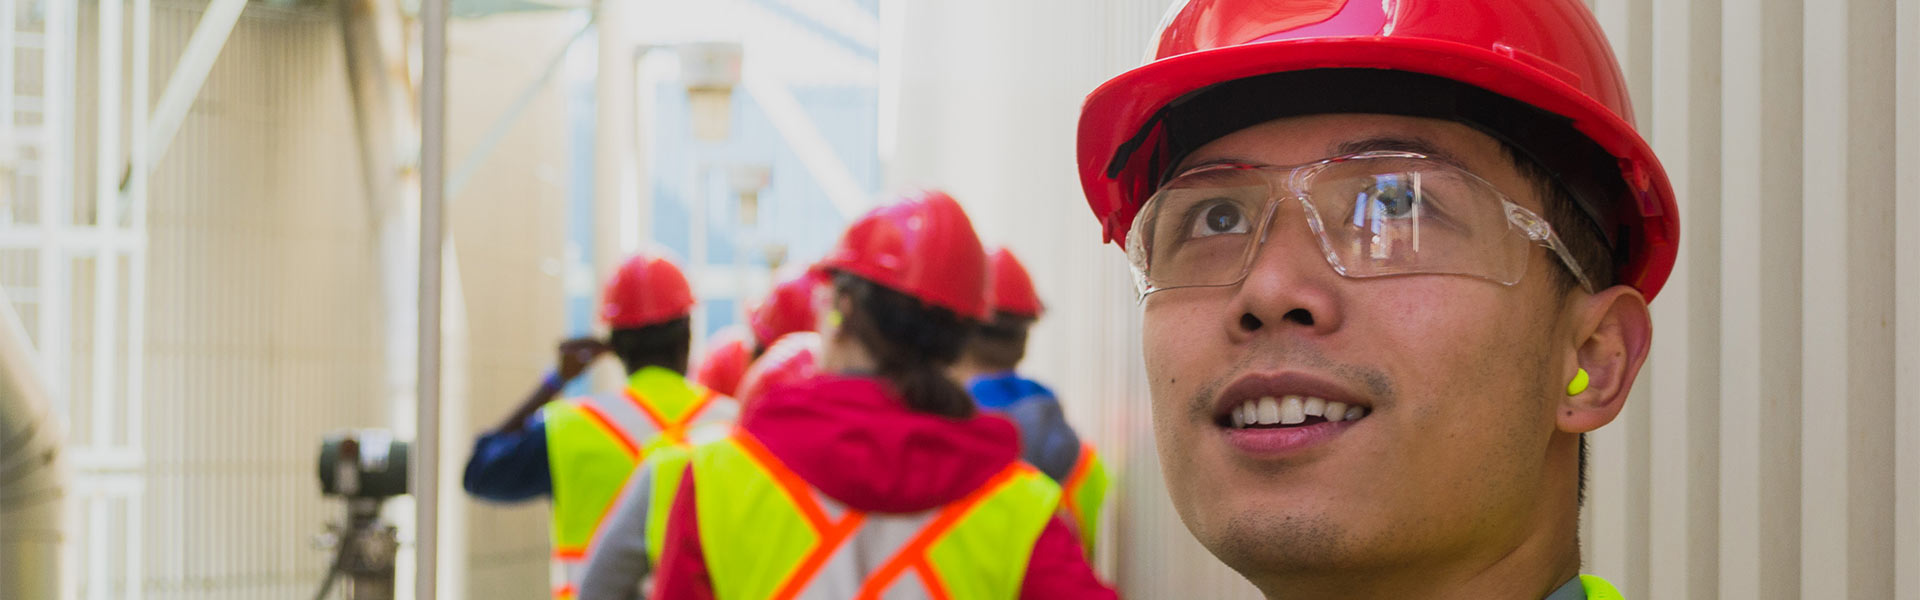 Marc in a hard hat looking up during an chemical plant tour